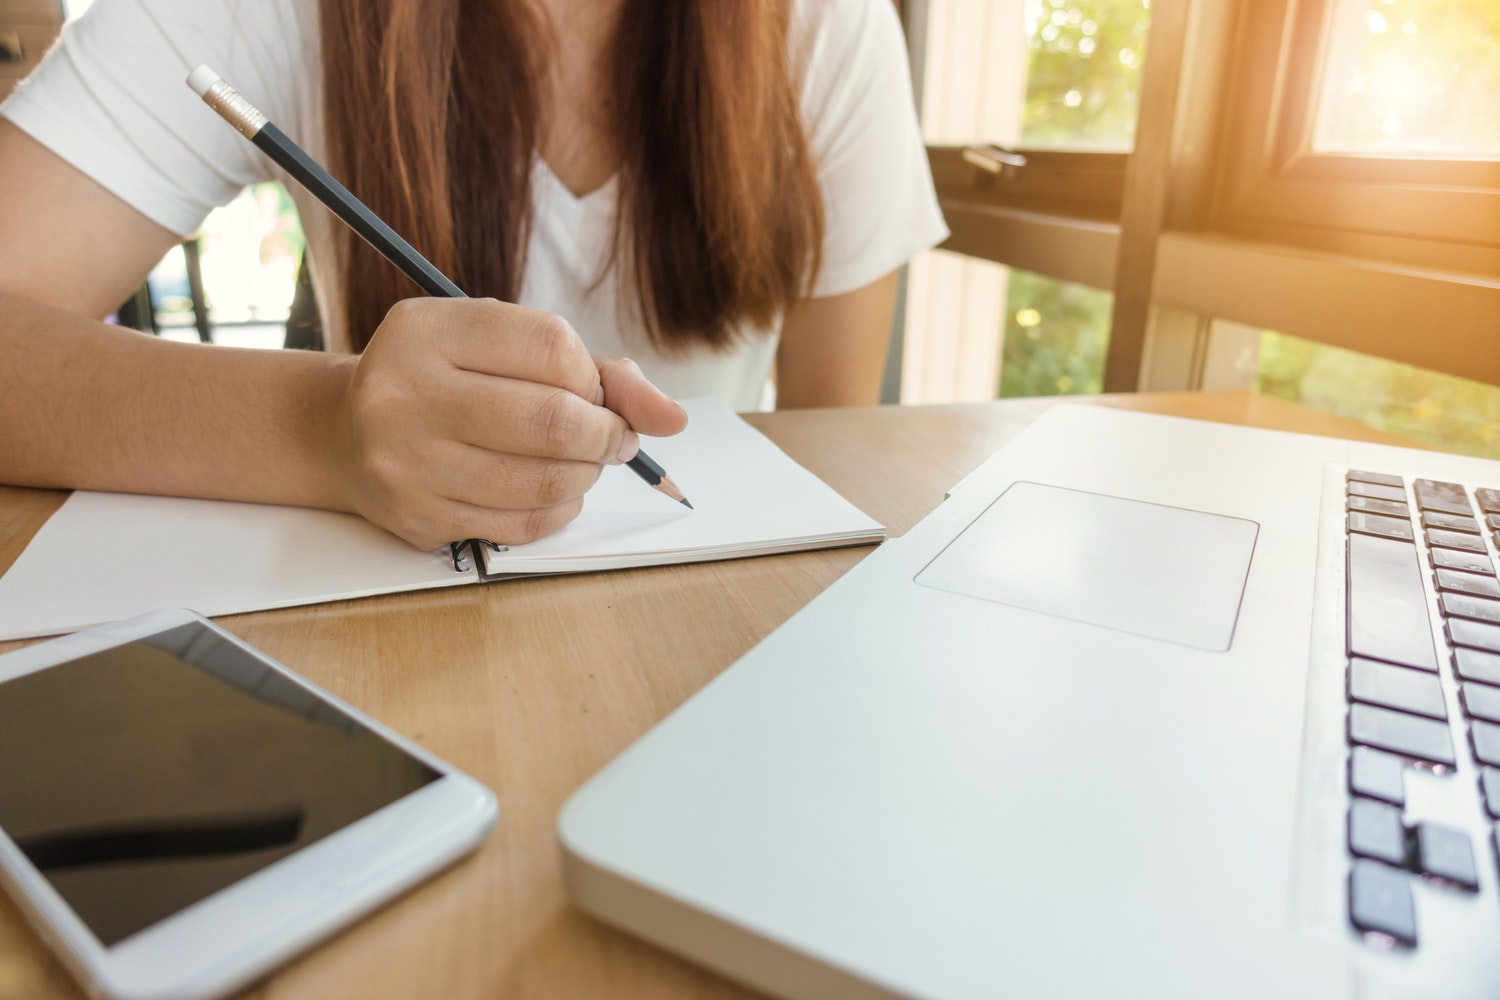 6 Productive Study Tips for the NCLEX